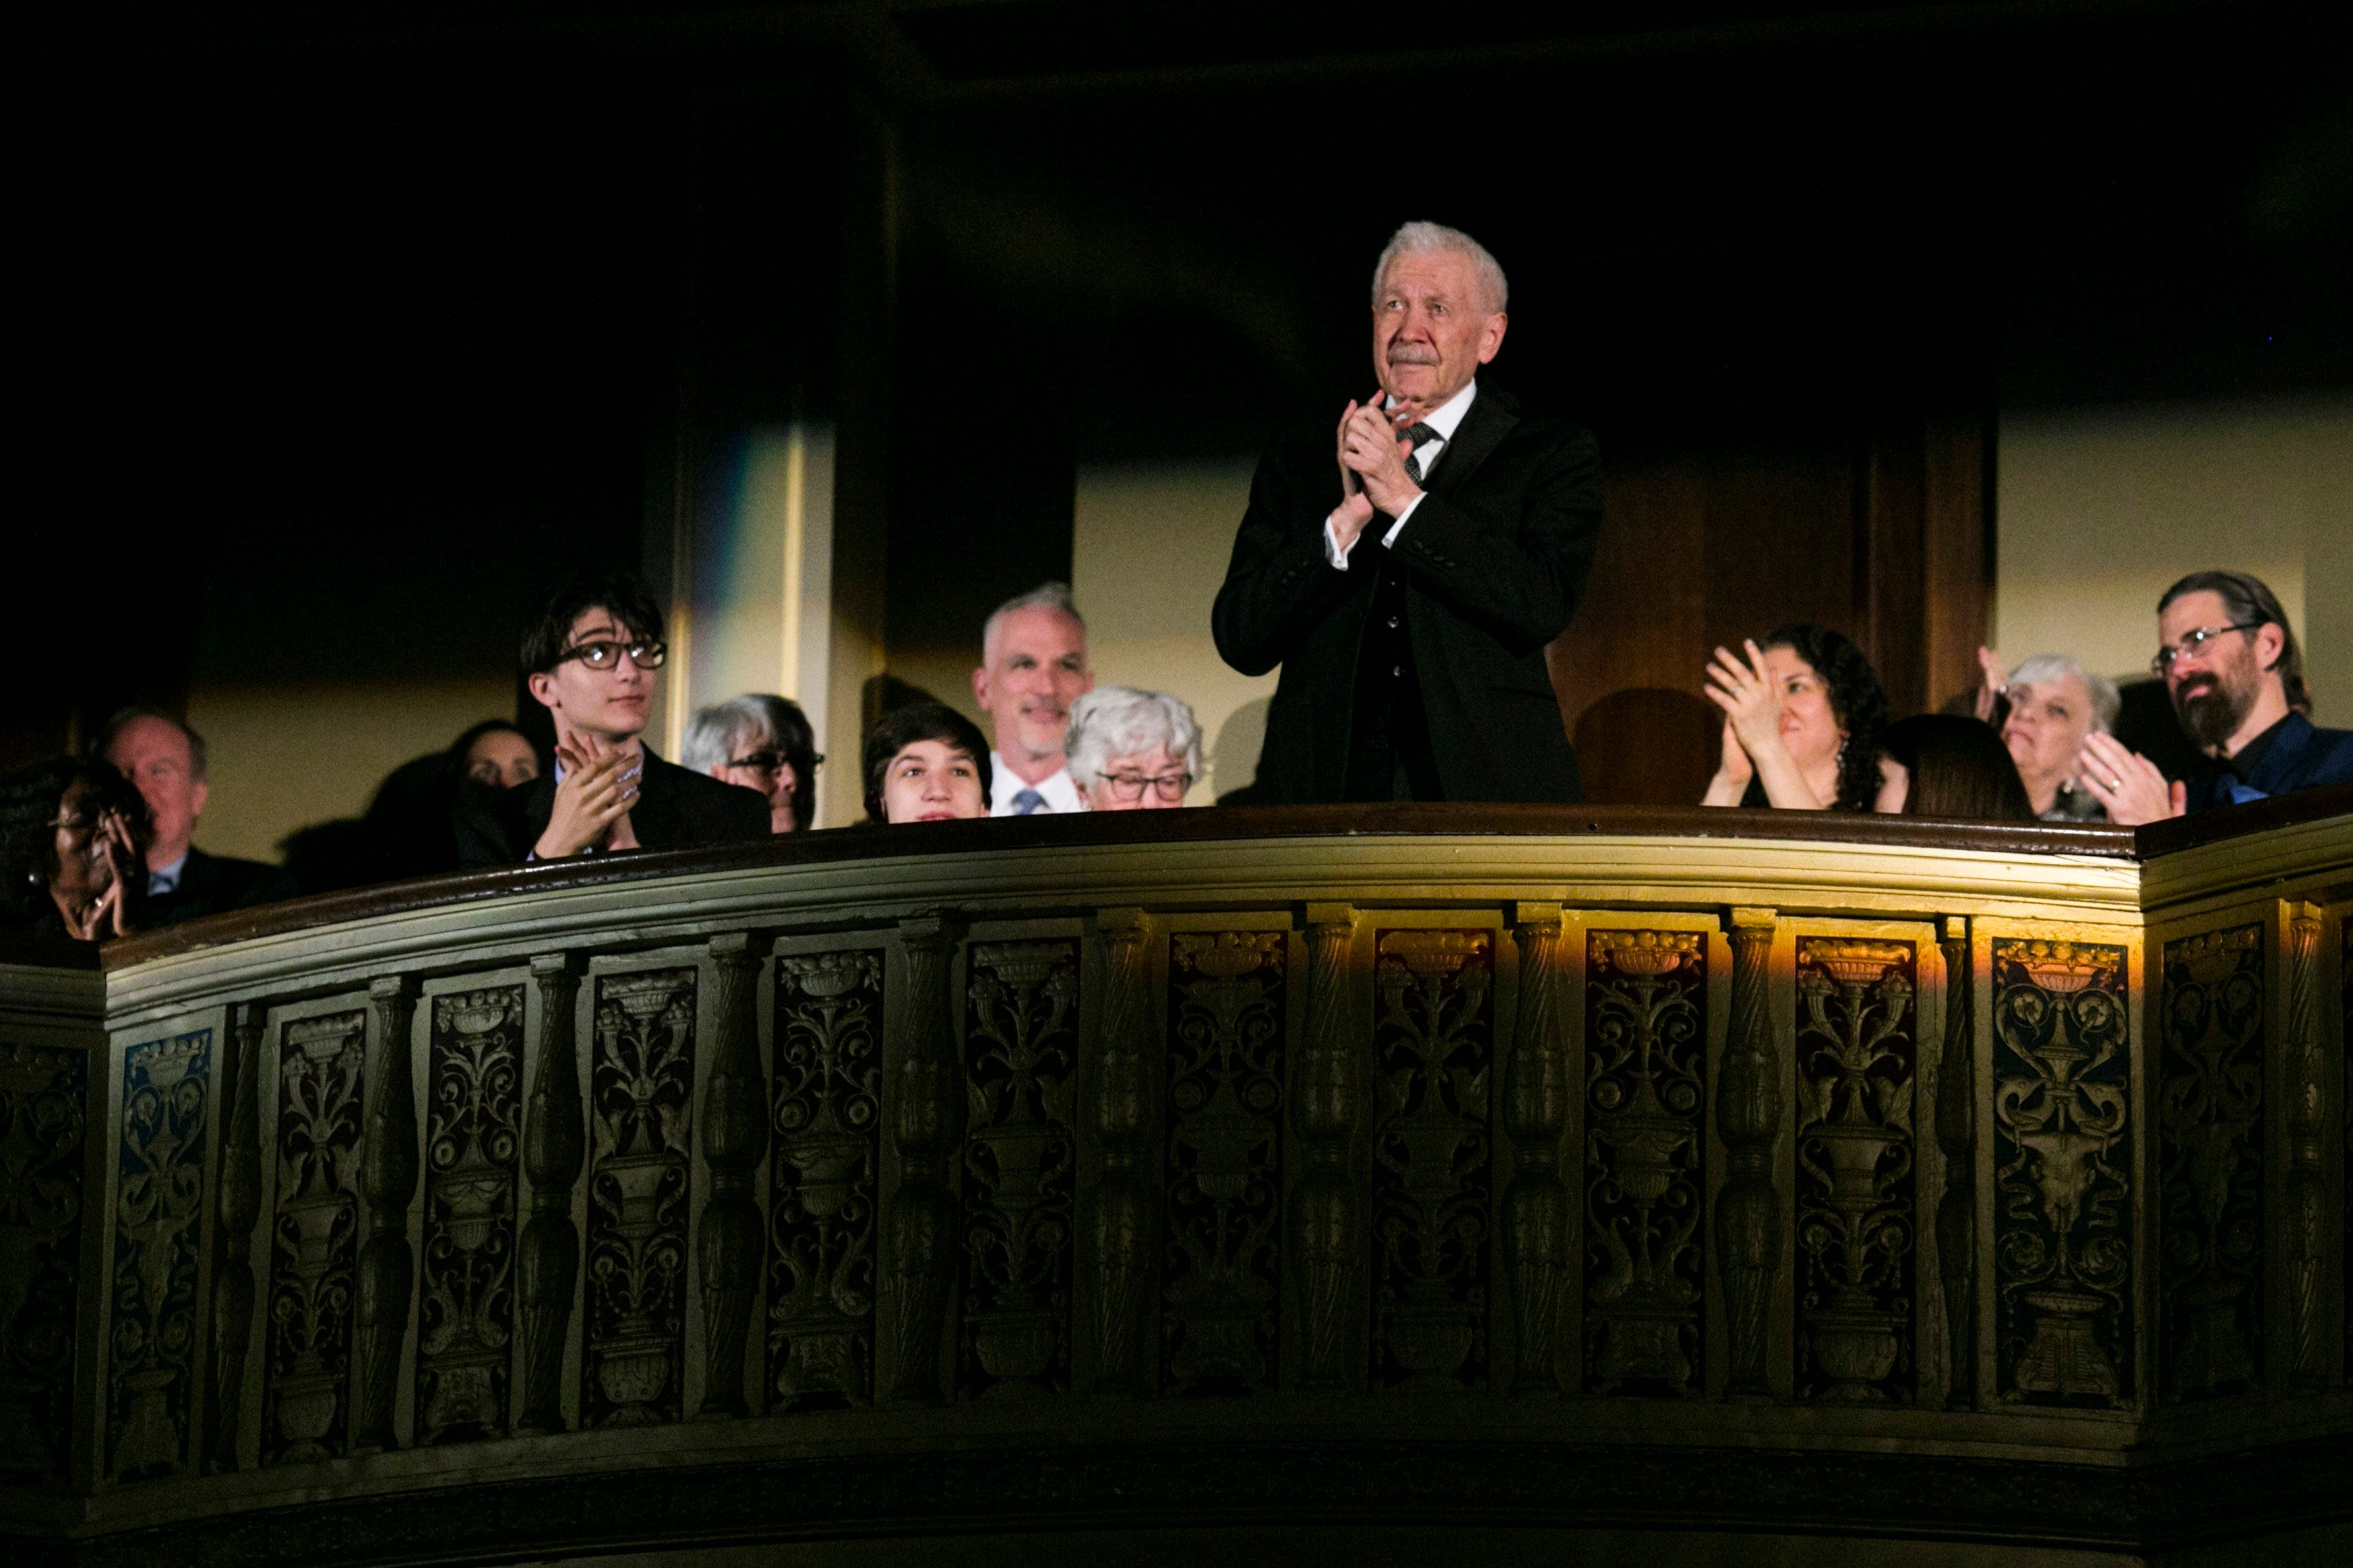 Founder and artistic director of the Michigan Opera Theatre, David DiChiera, 82, stands up as members of the crowd give him an ovation during a gala in honor of his retirement at the Detroit Opera House on Friday, May 19, 2017. The performances were interluded by interviews from DiChiera's colleagues on his legacy and featured an after party of guests at it's end.